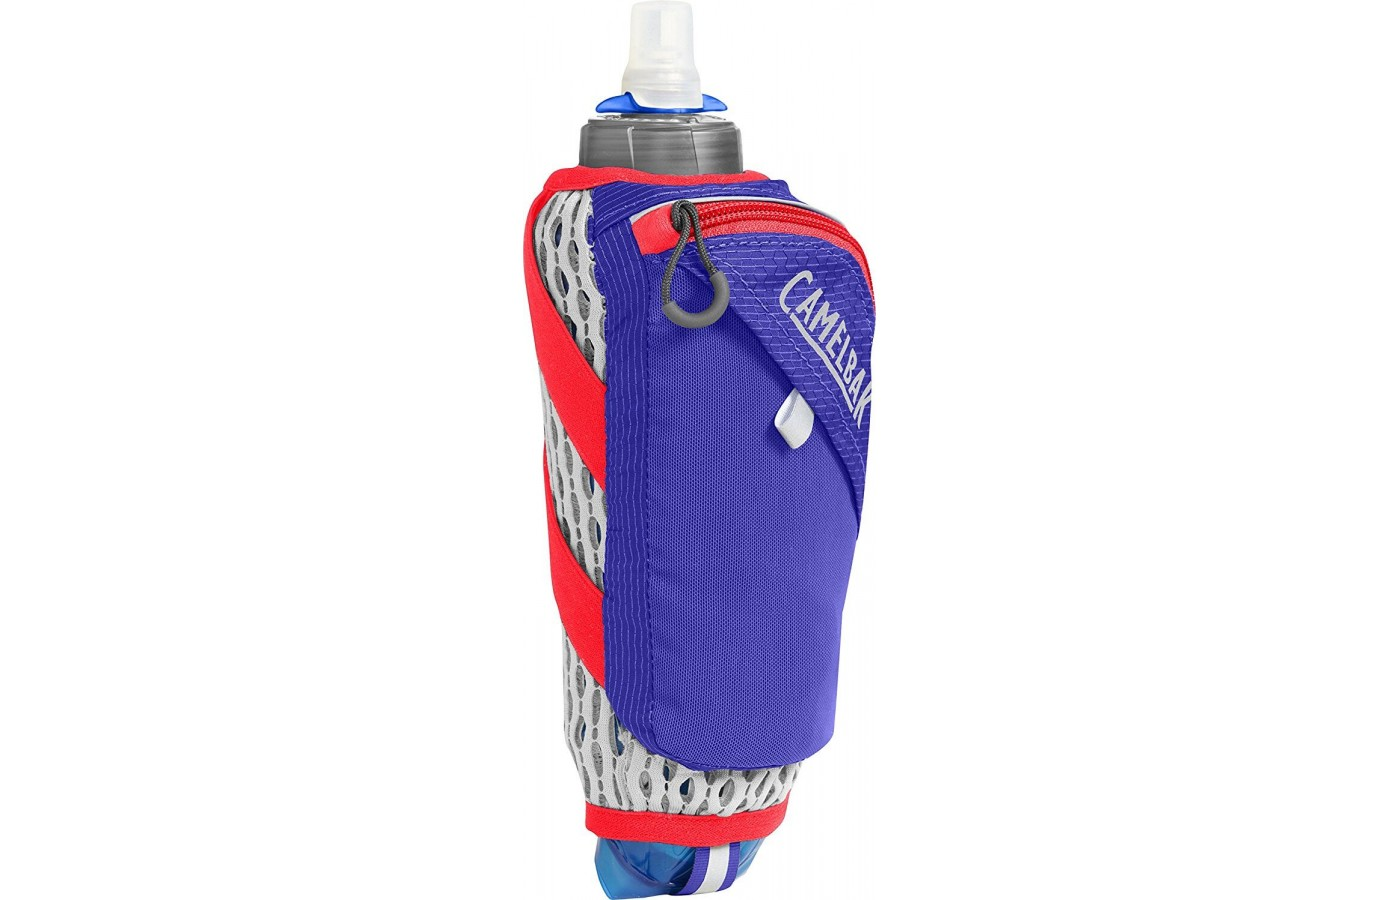 This product comes with a 17 ounce soft flask that is designed to compress and keep liquid 2x colder.